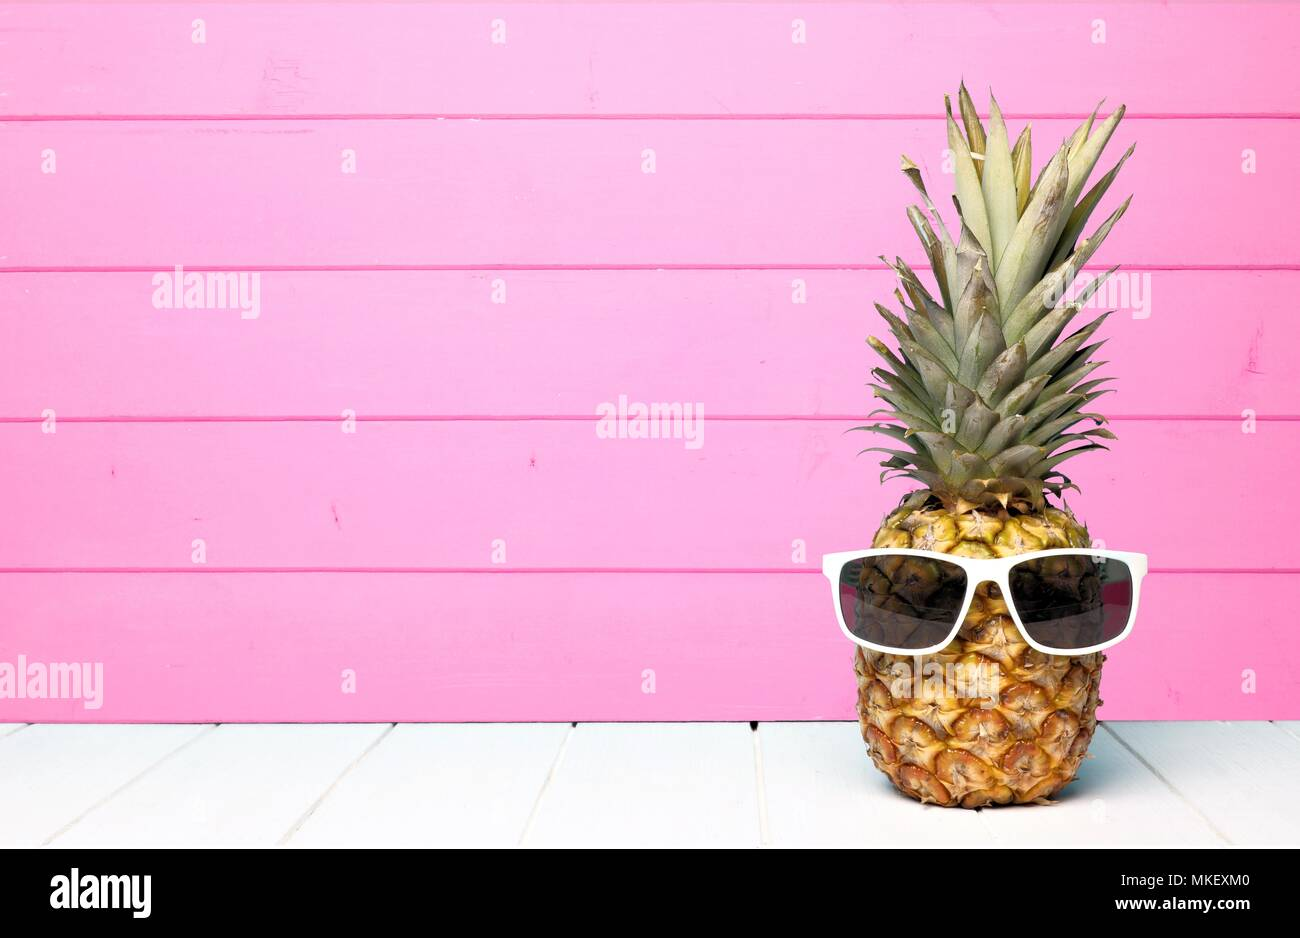 Pineapple With Sunglasses Tumblr Sunglasses Pastel Stock Photos And Sunglasses Pastel Stock